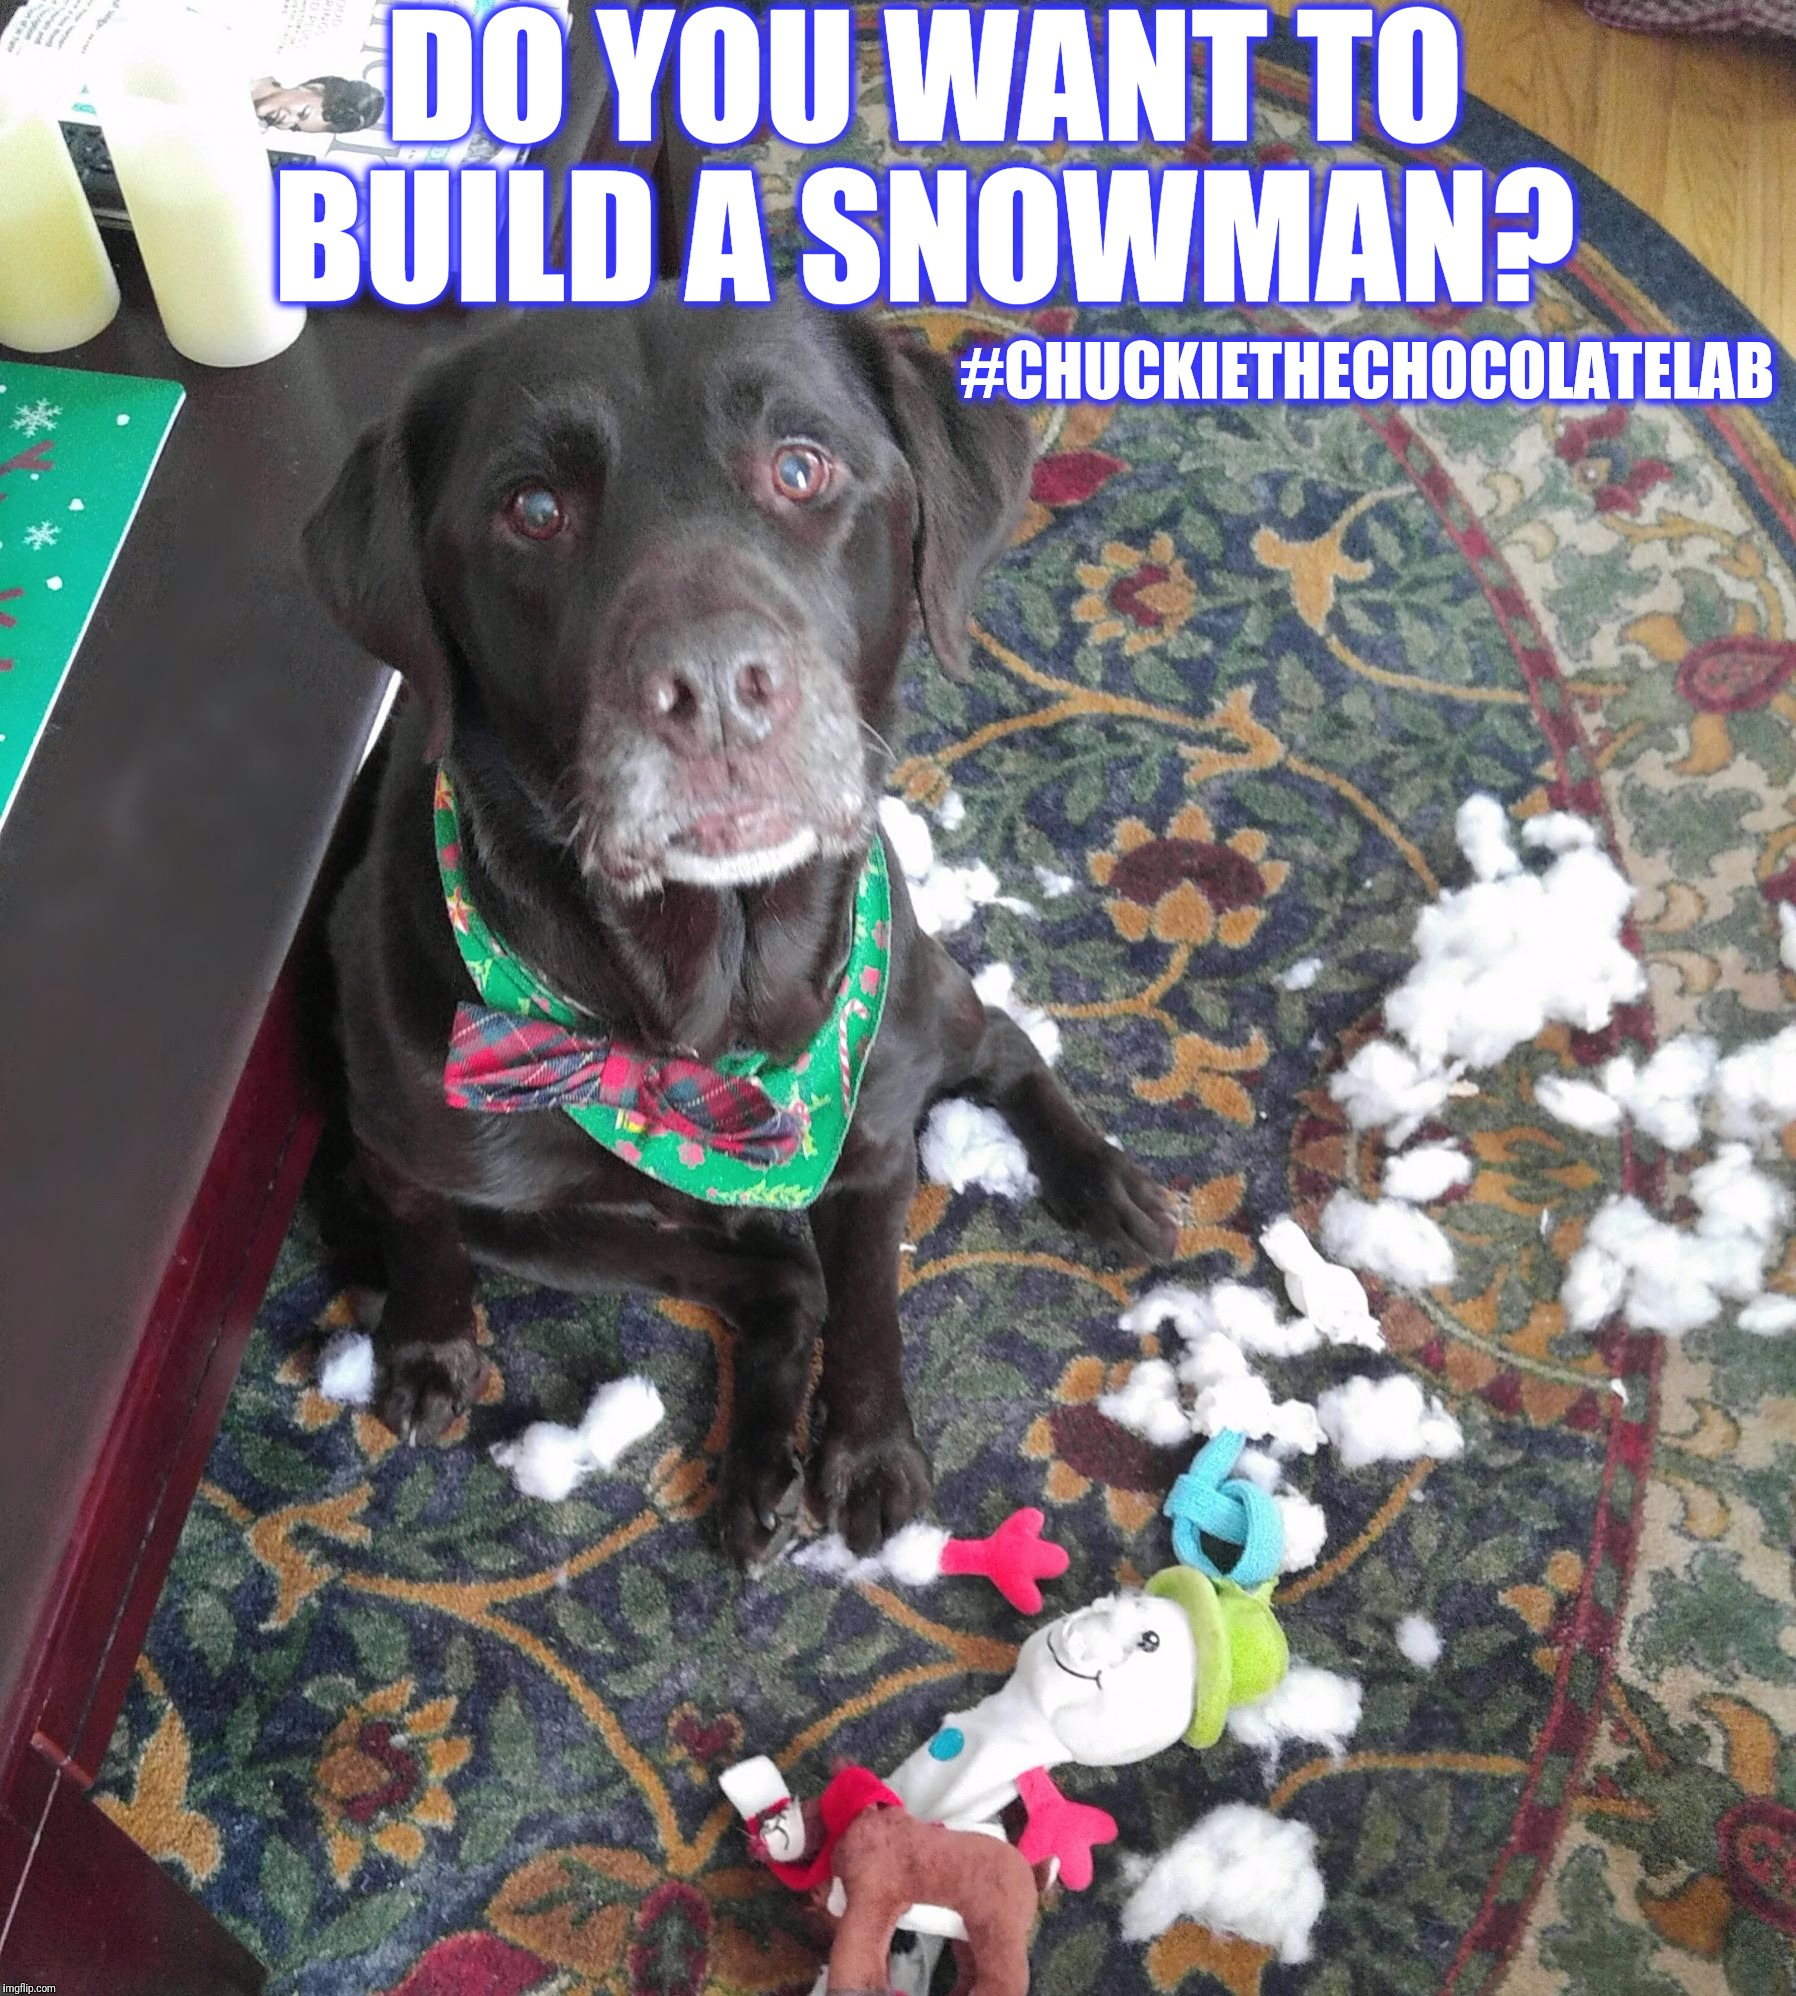 Do you want to build a snowman?  |  DO YOU WANT TO BUILD A SNOWMAN? #CHUCKIETHECHOCOLATELAB | image tagged in chuckie the chocolate lab,frozen,snowman,do you want to build a snowman,funny,memes | made w/ Imgflip meme maker